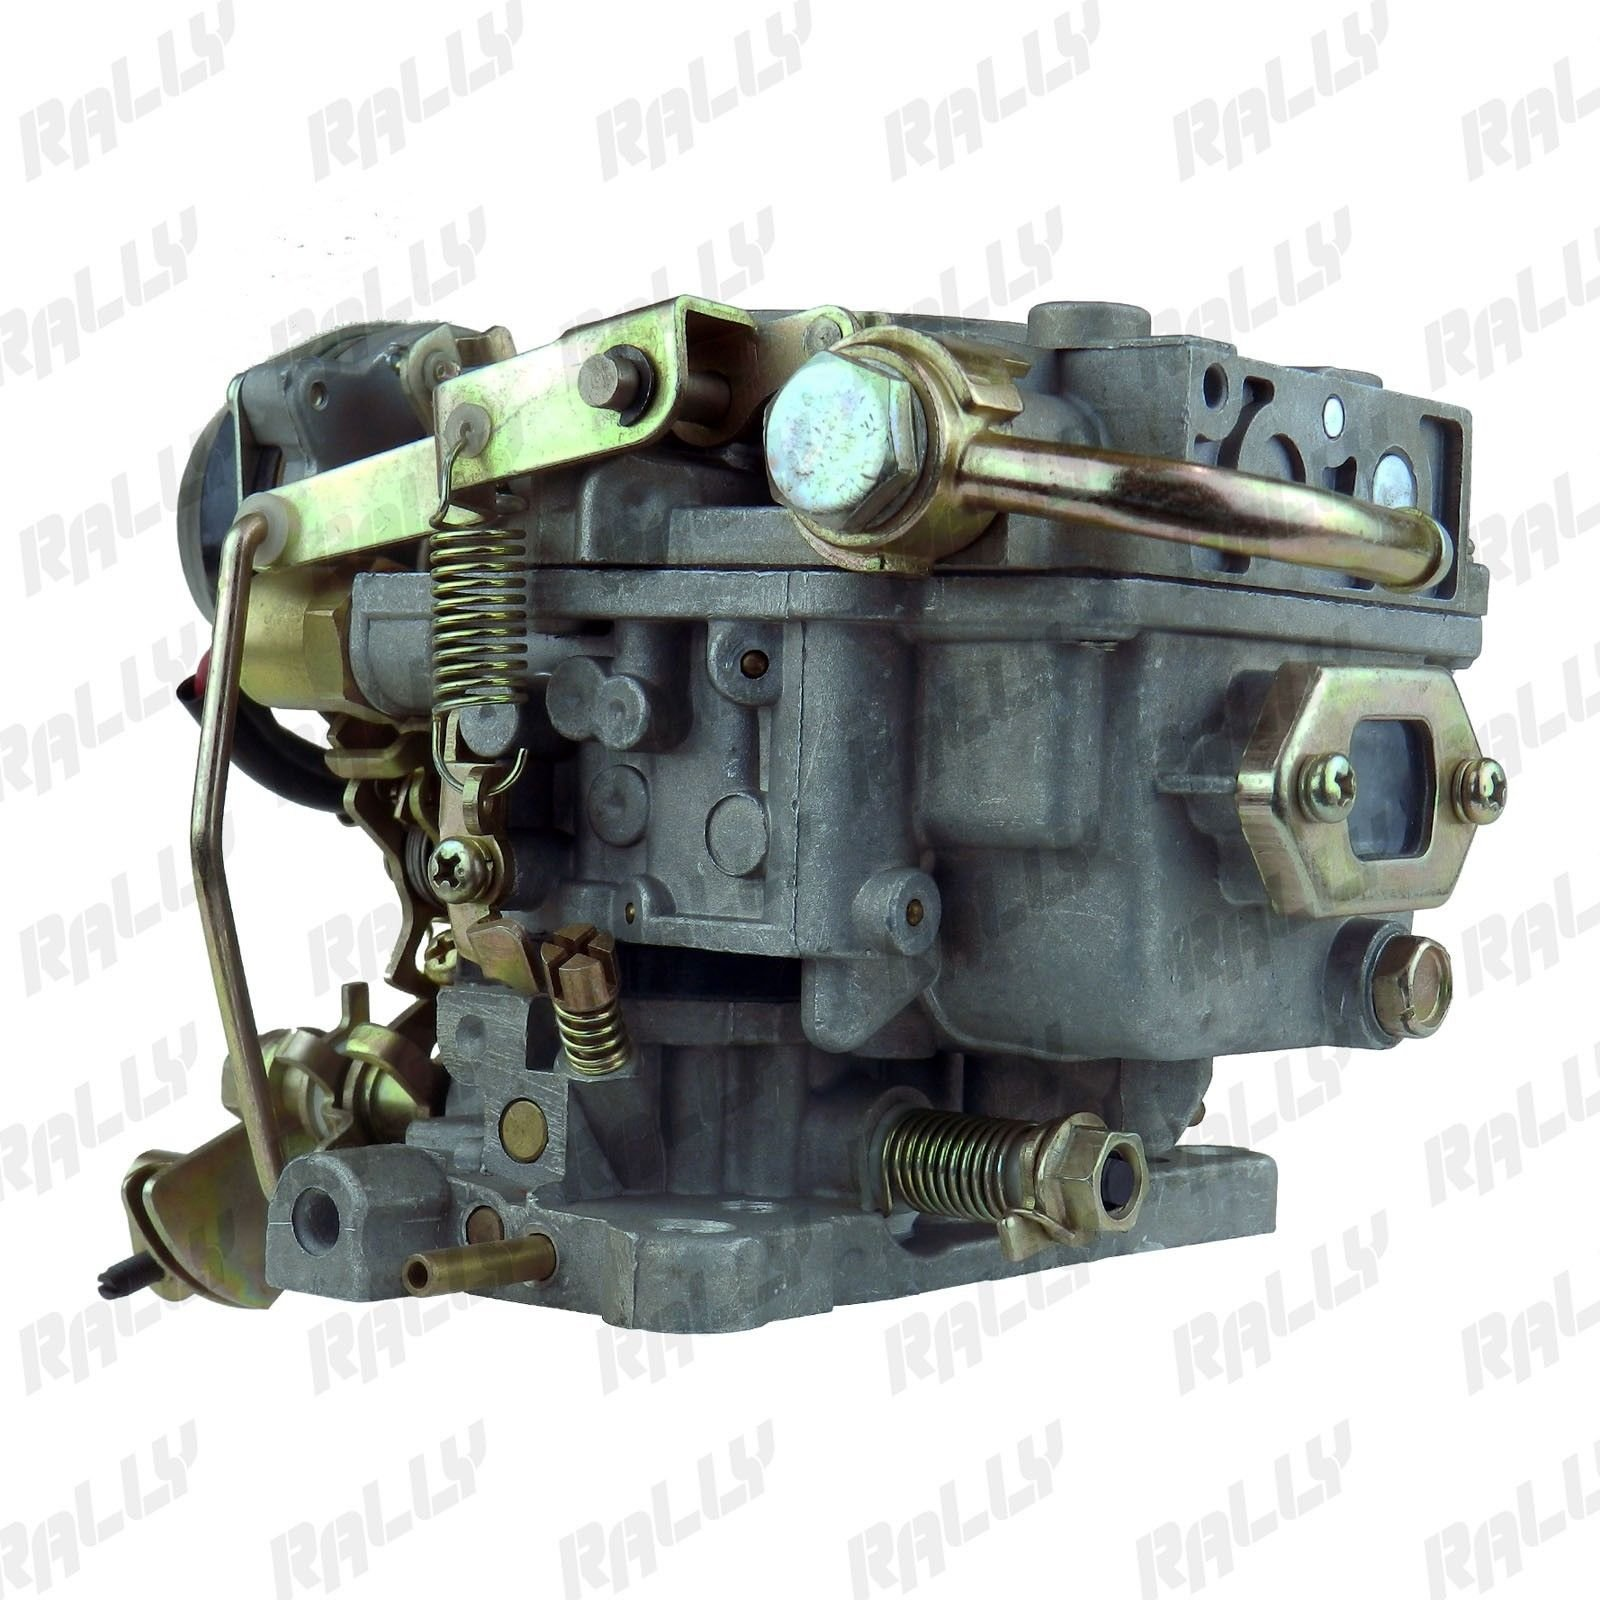 1348 CARBURETOR ISUZU 2 BARREL AMIGO PICKP UP IMPULSE TROPPER 2.3L 4ZD1